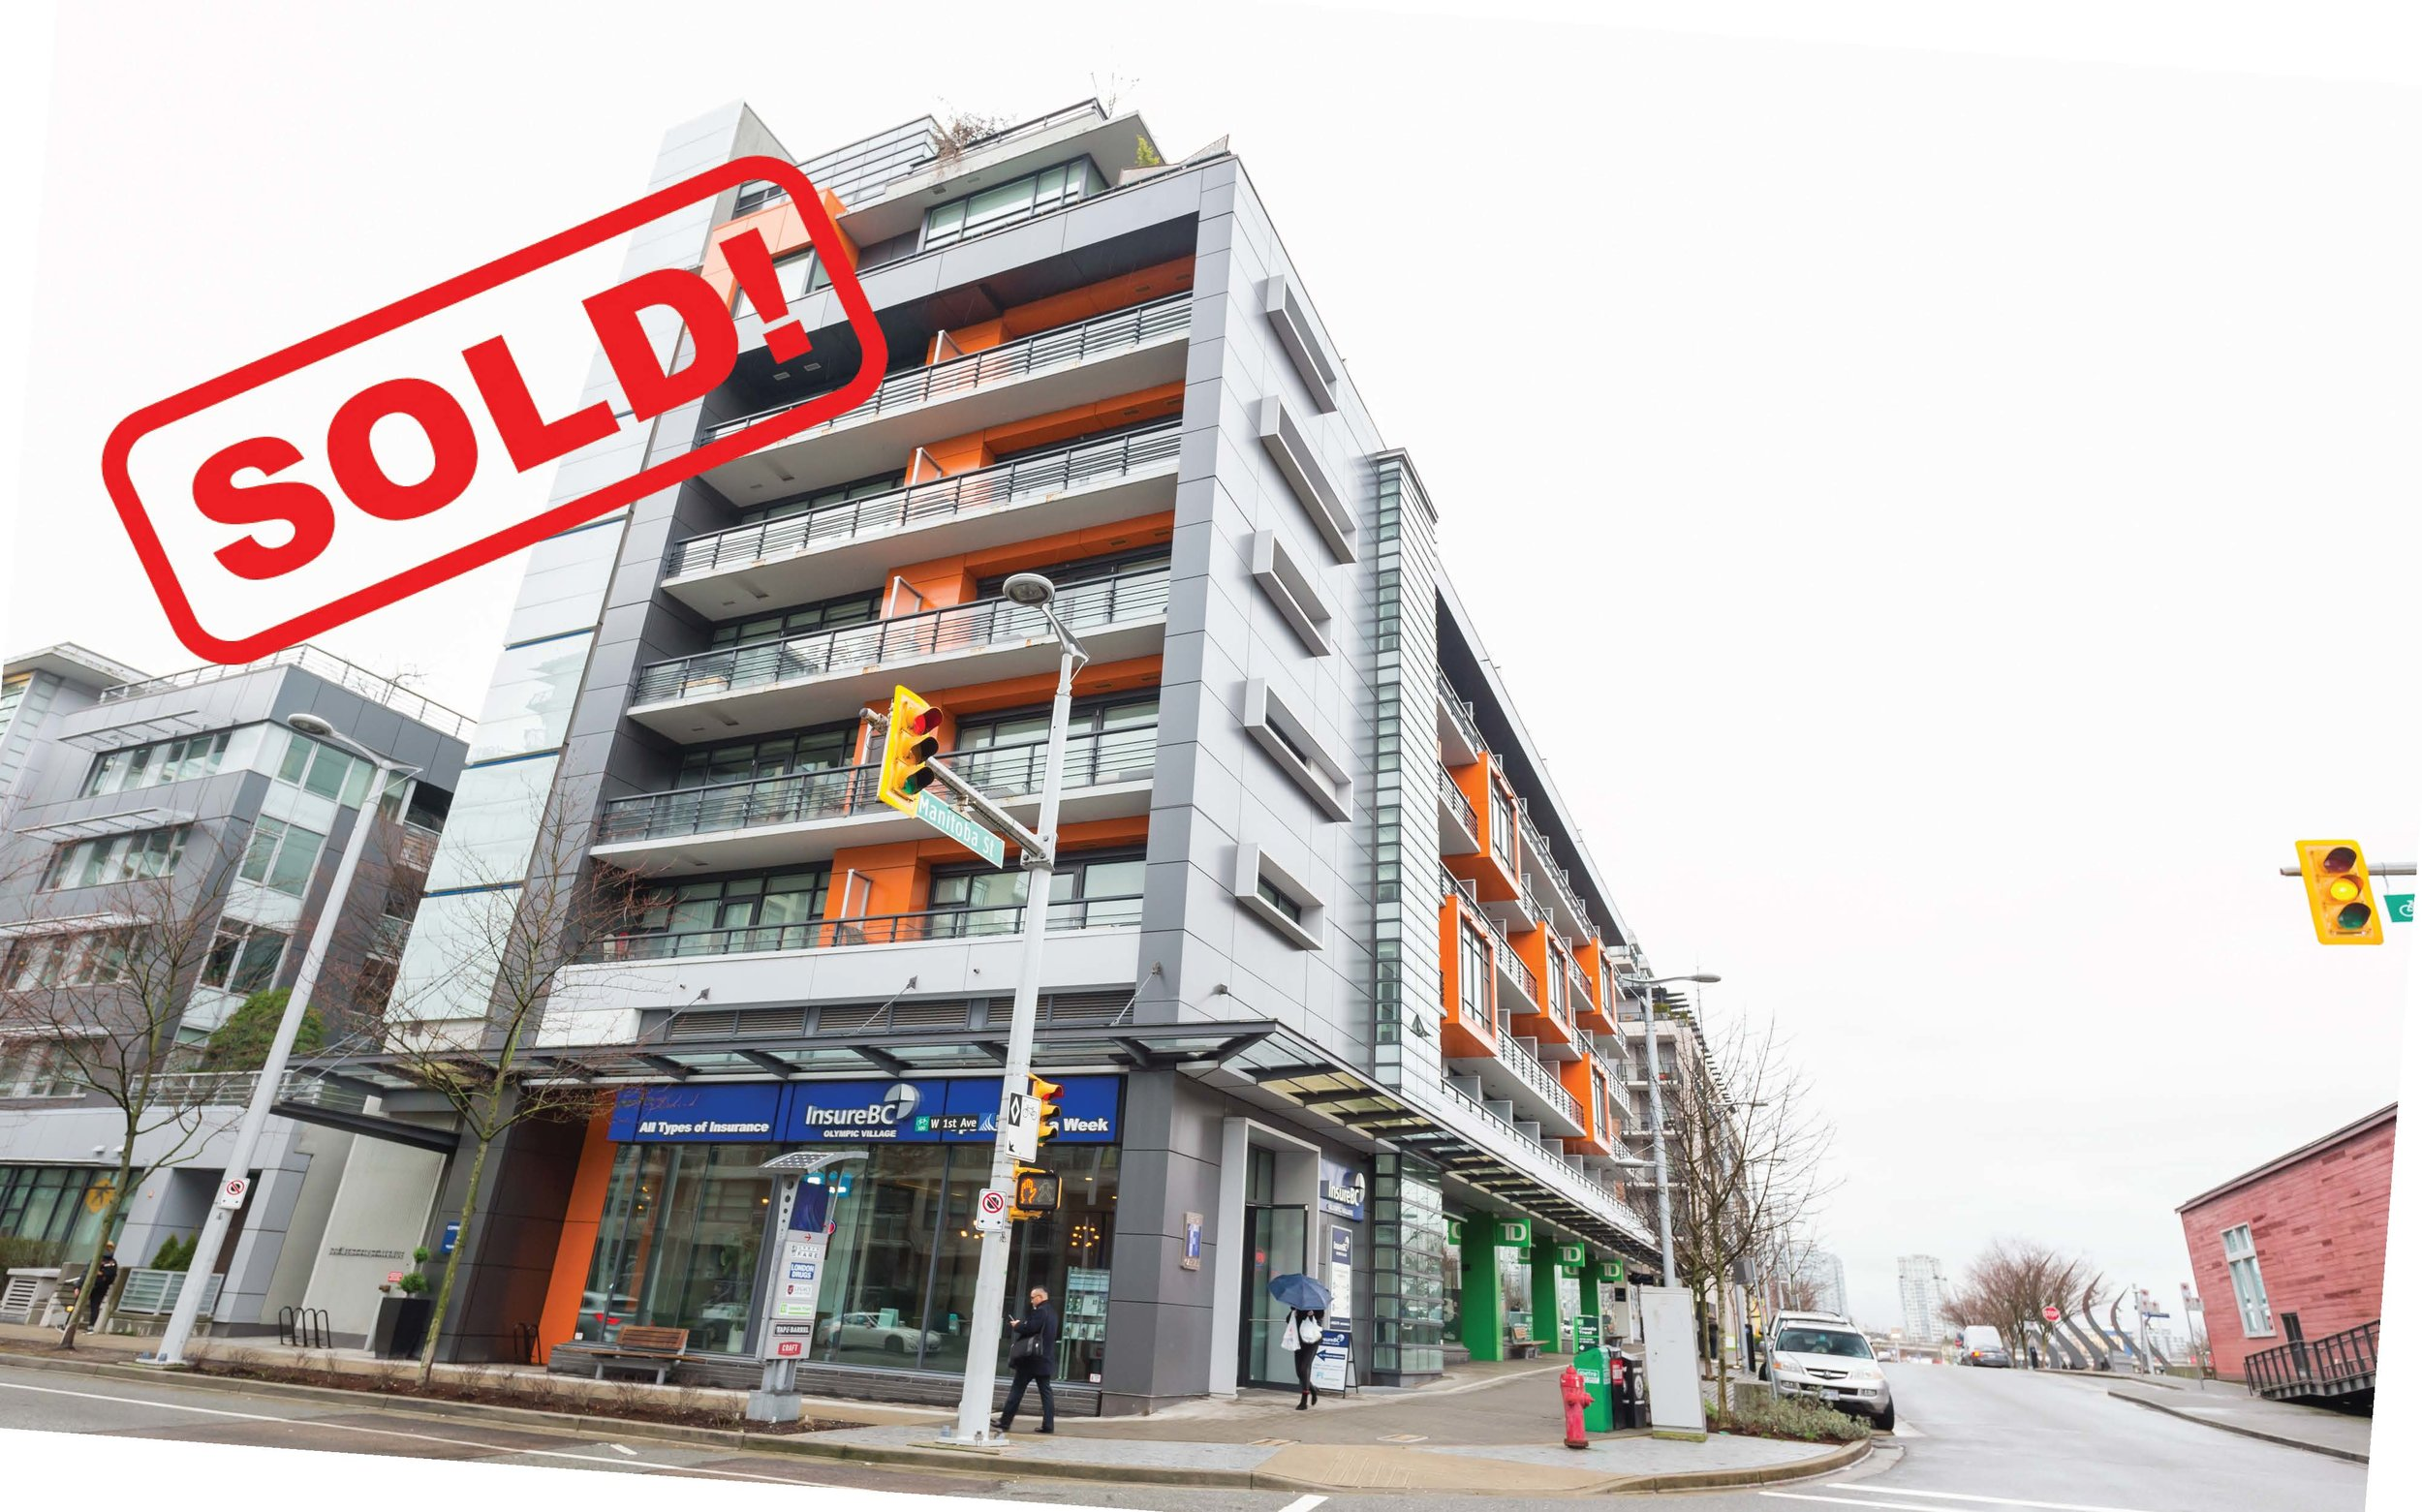 805-123 W. 1st AVENUE     SOLD FOR: $1,335,000  2 BED | 2 BATH | 1,007 SF